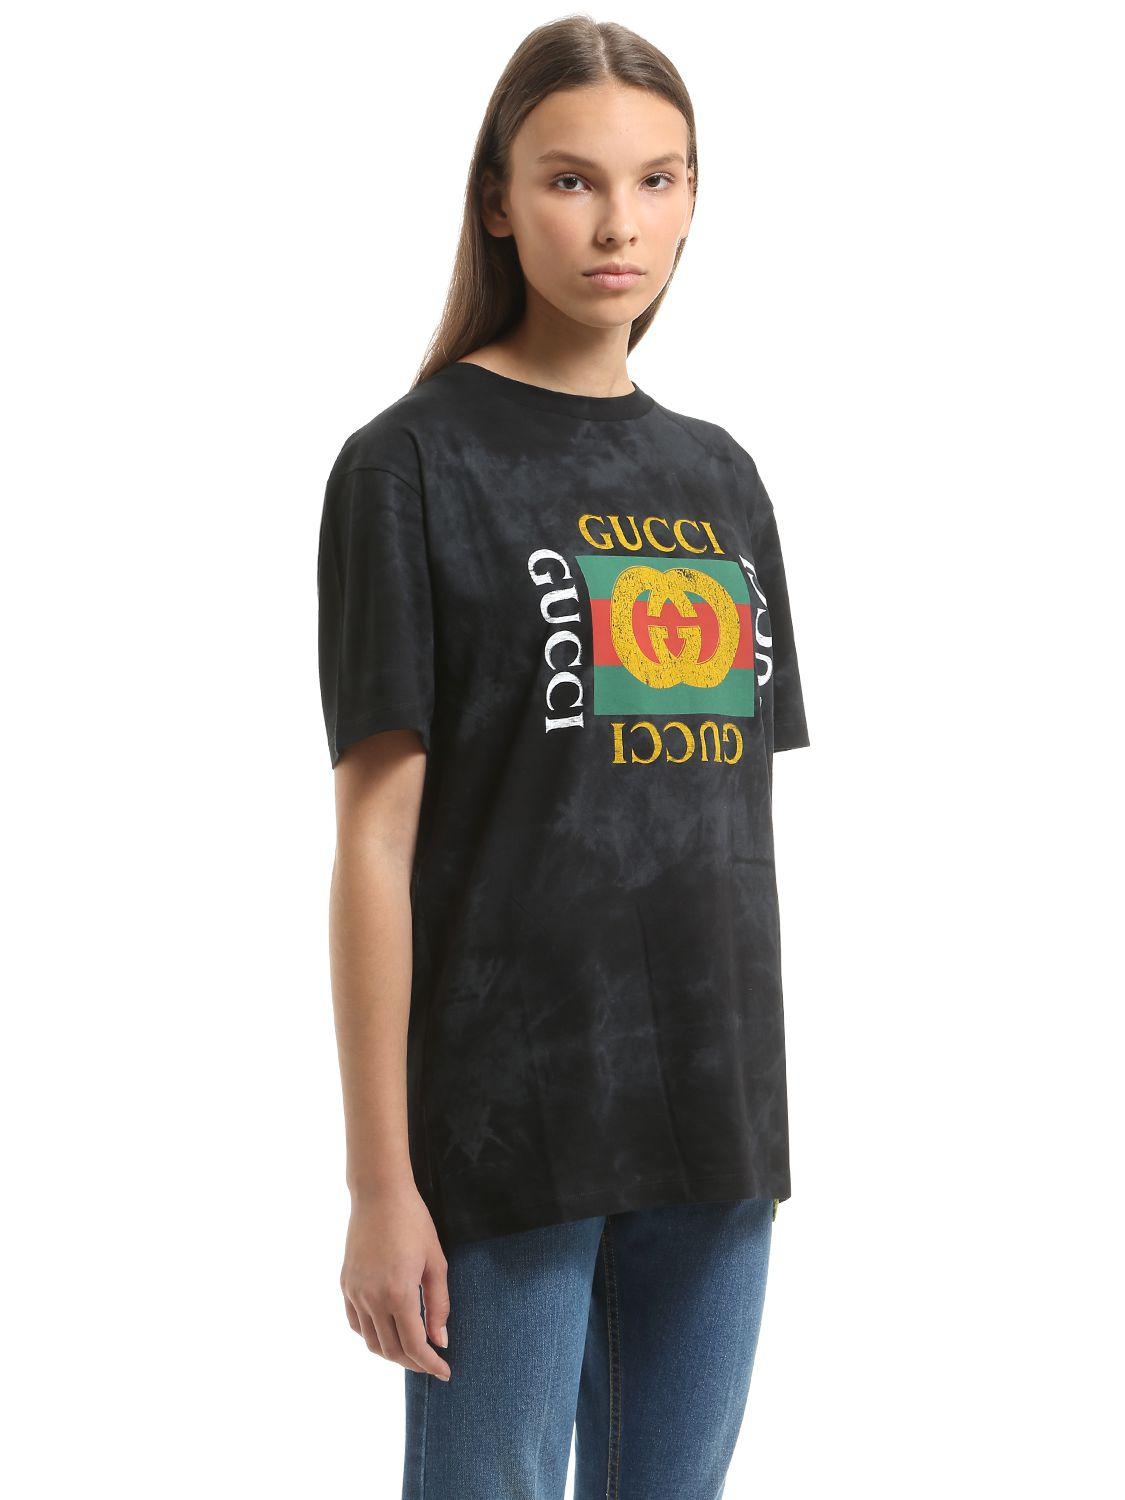 Lyst Gucci Imitation Print Cotton Jersey T Shirt In Black